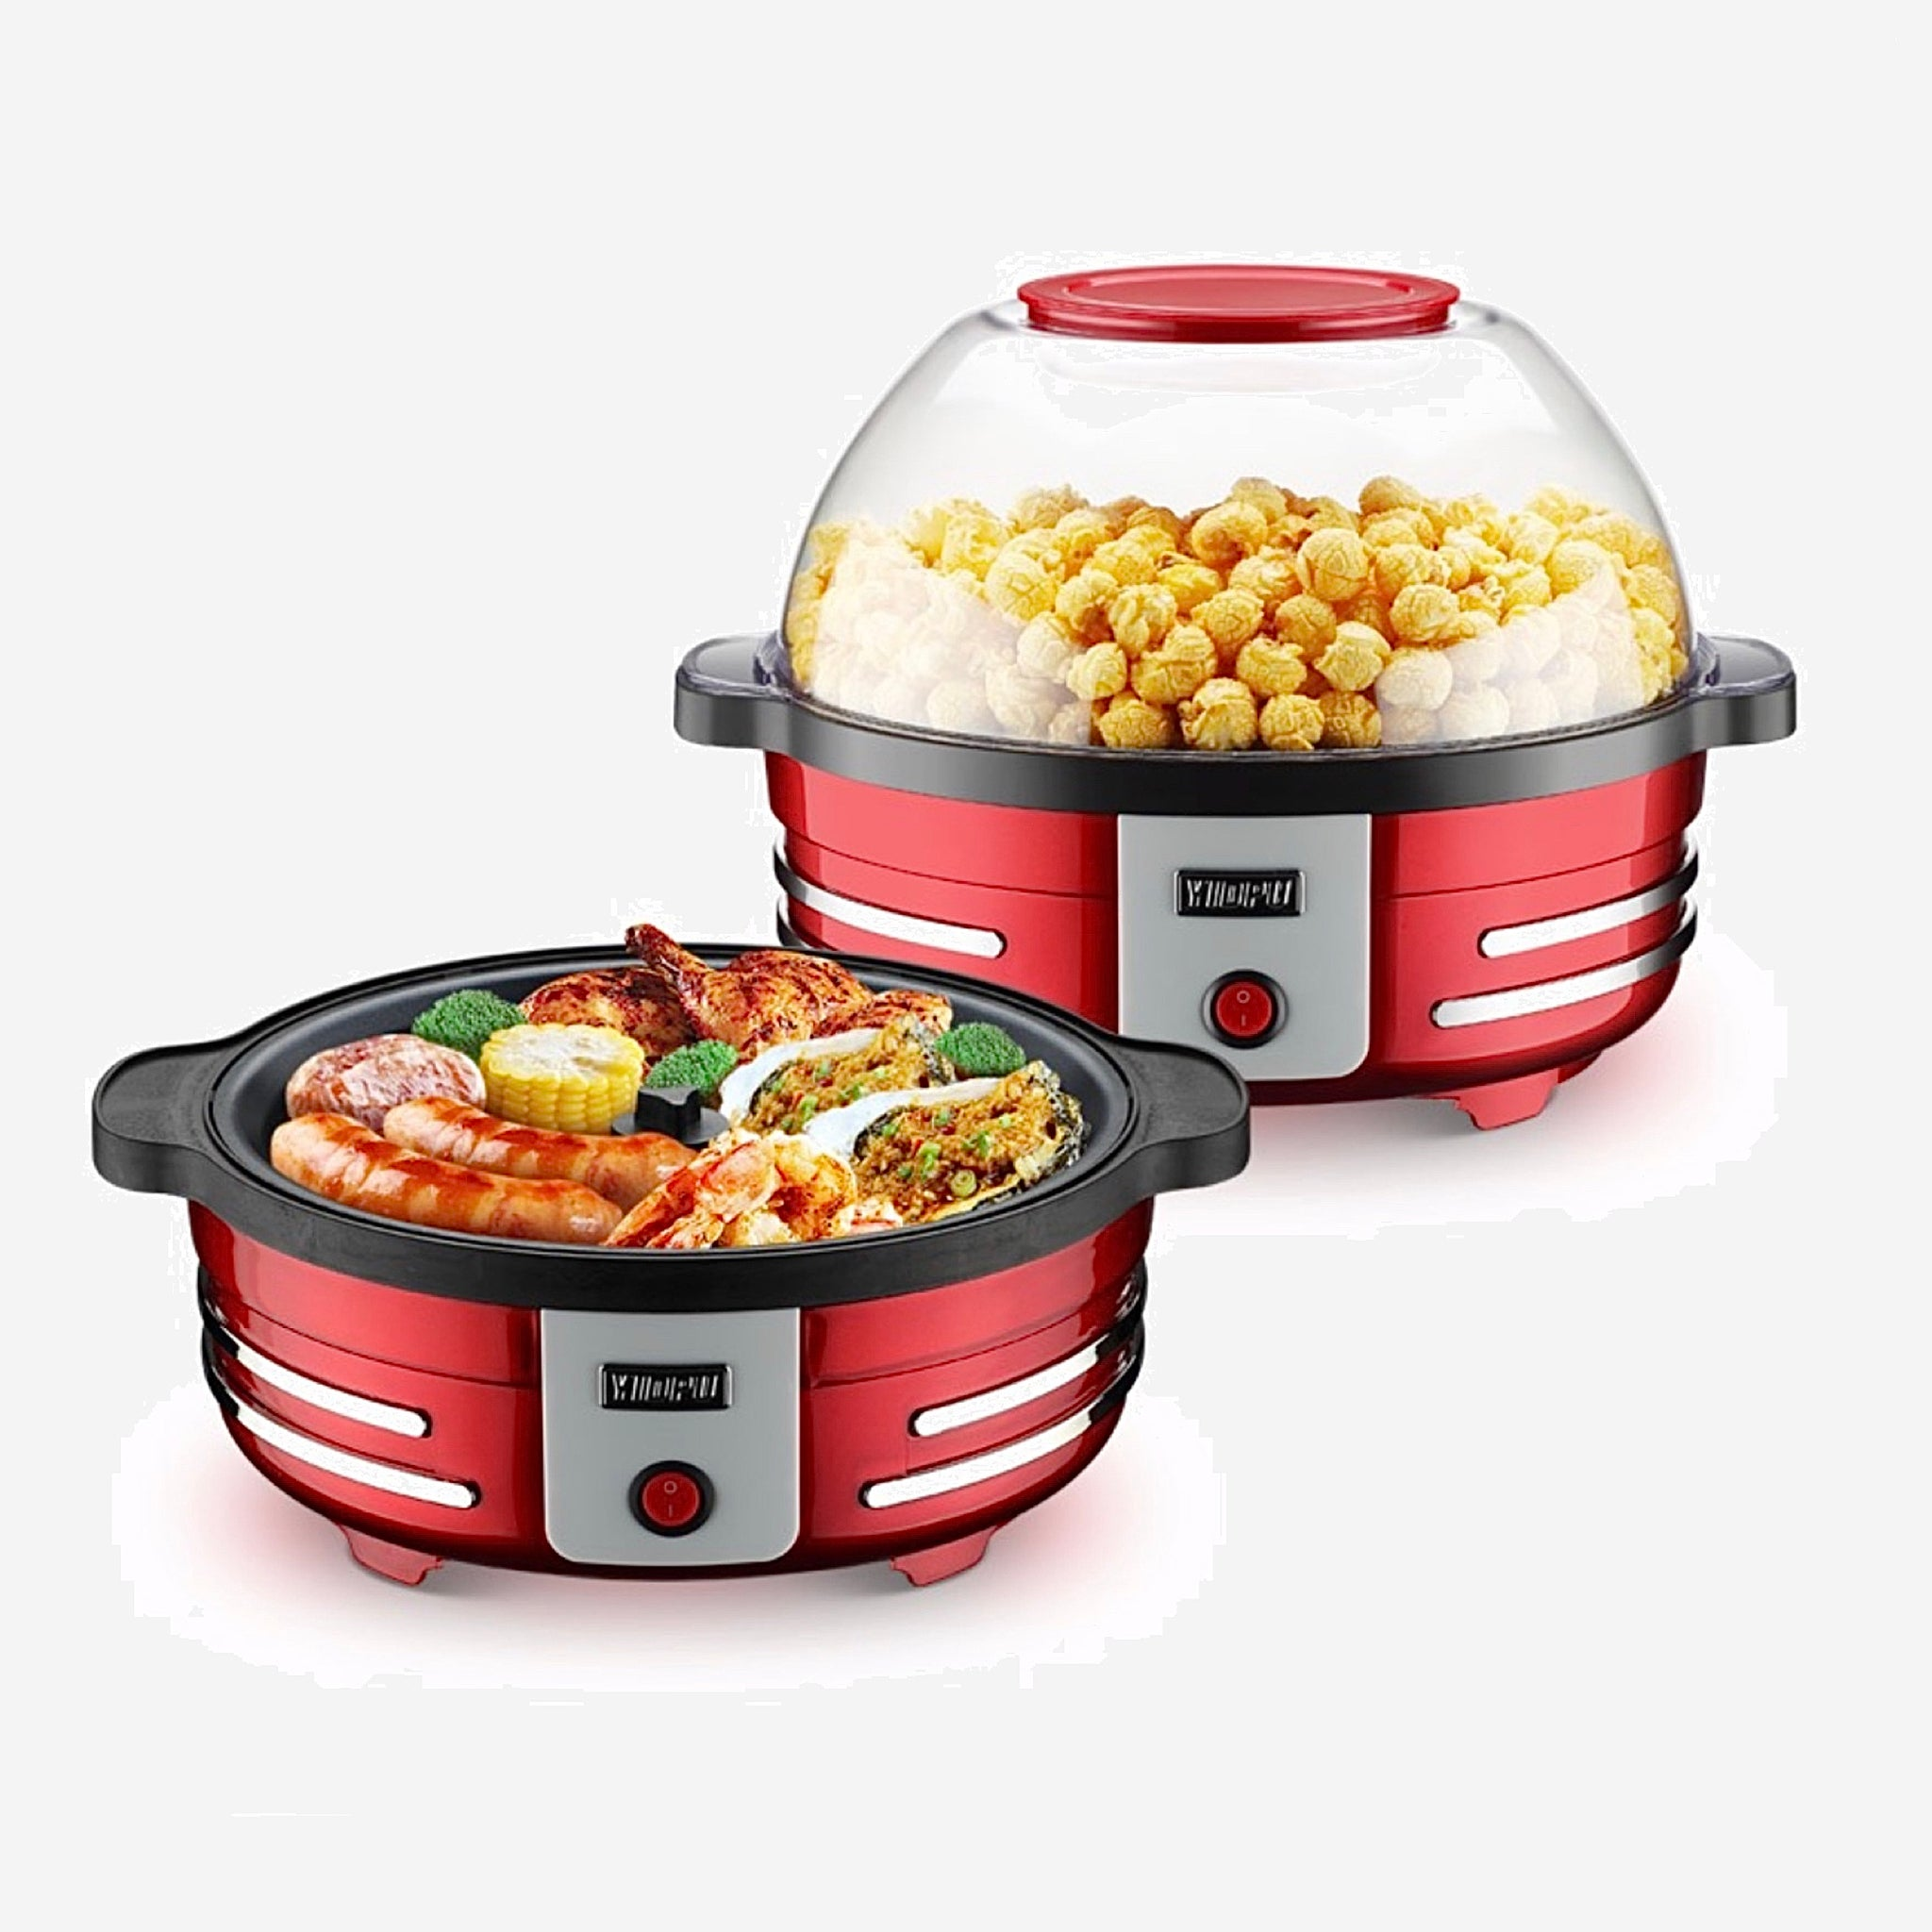 2-in-1 Popcorn Maker BBQ Machine Fully Automatic Household Small 5L Electric Popcorn Machine Food Grade Non-stick Pot Party Corn Barbecue